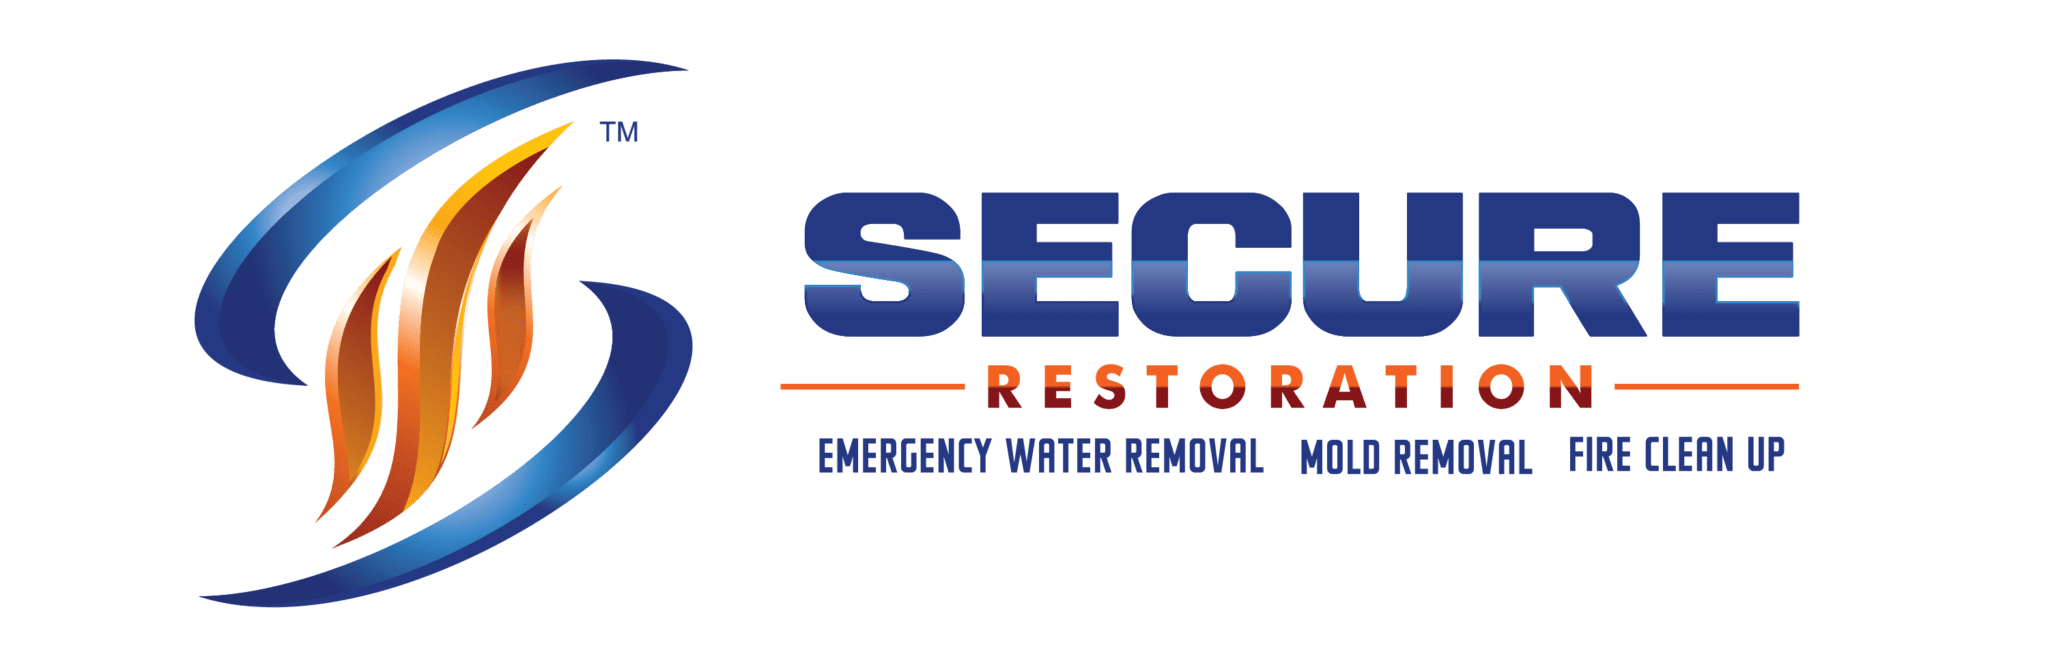 Secure Restoration | Basement Sewage Removal in Chimney Rock